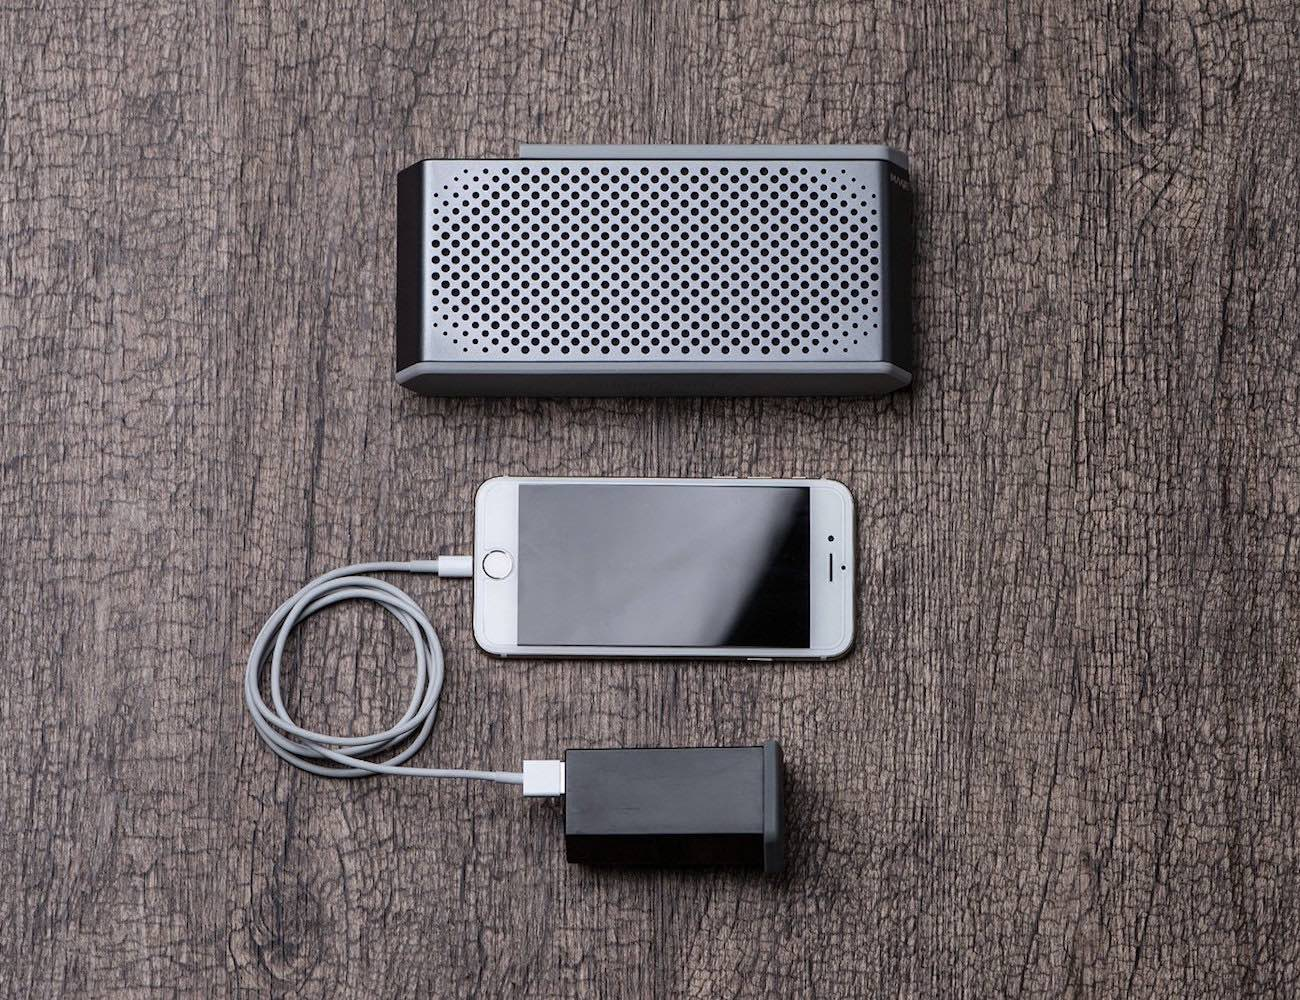 maqe-soundjump-bluetooth-speaker-with-power-bank-03